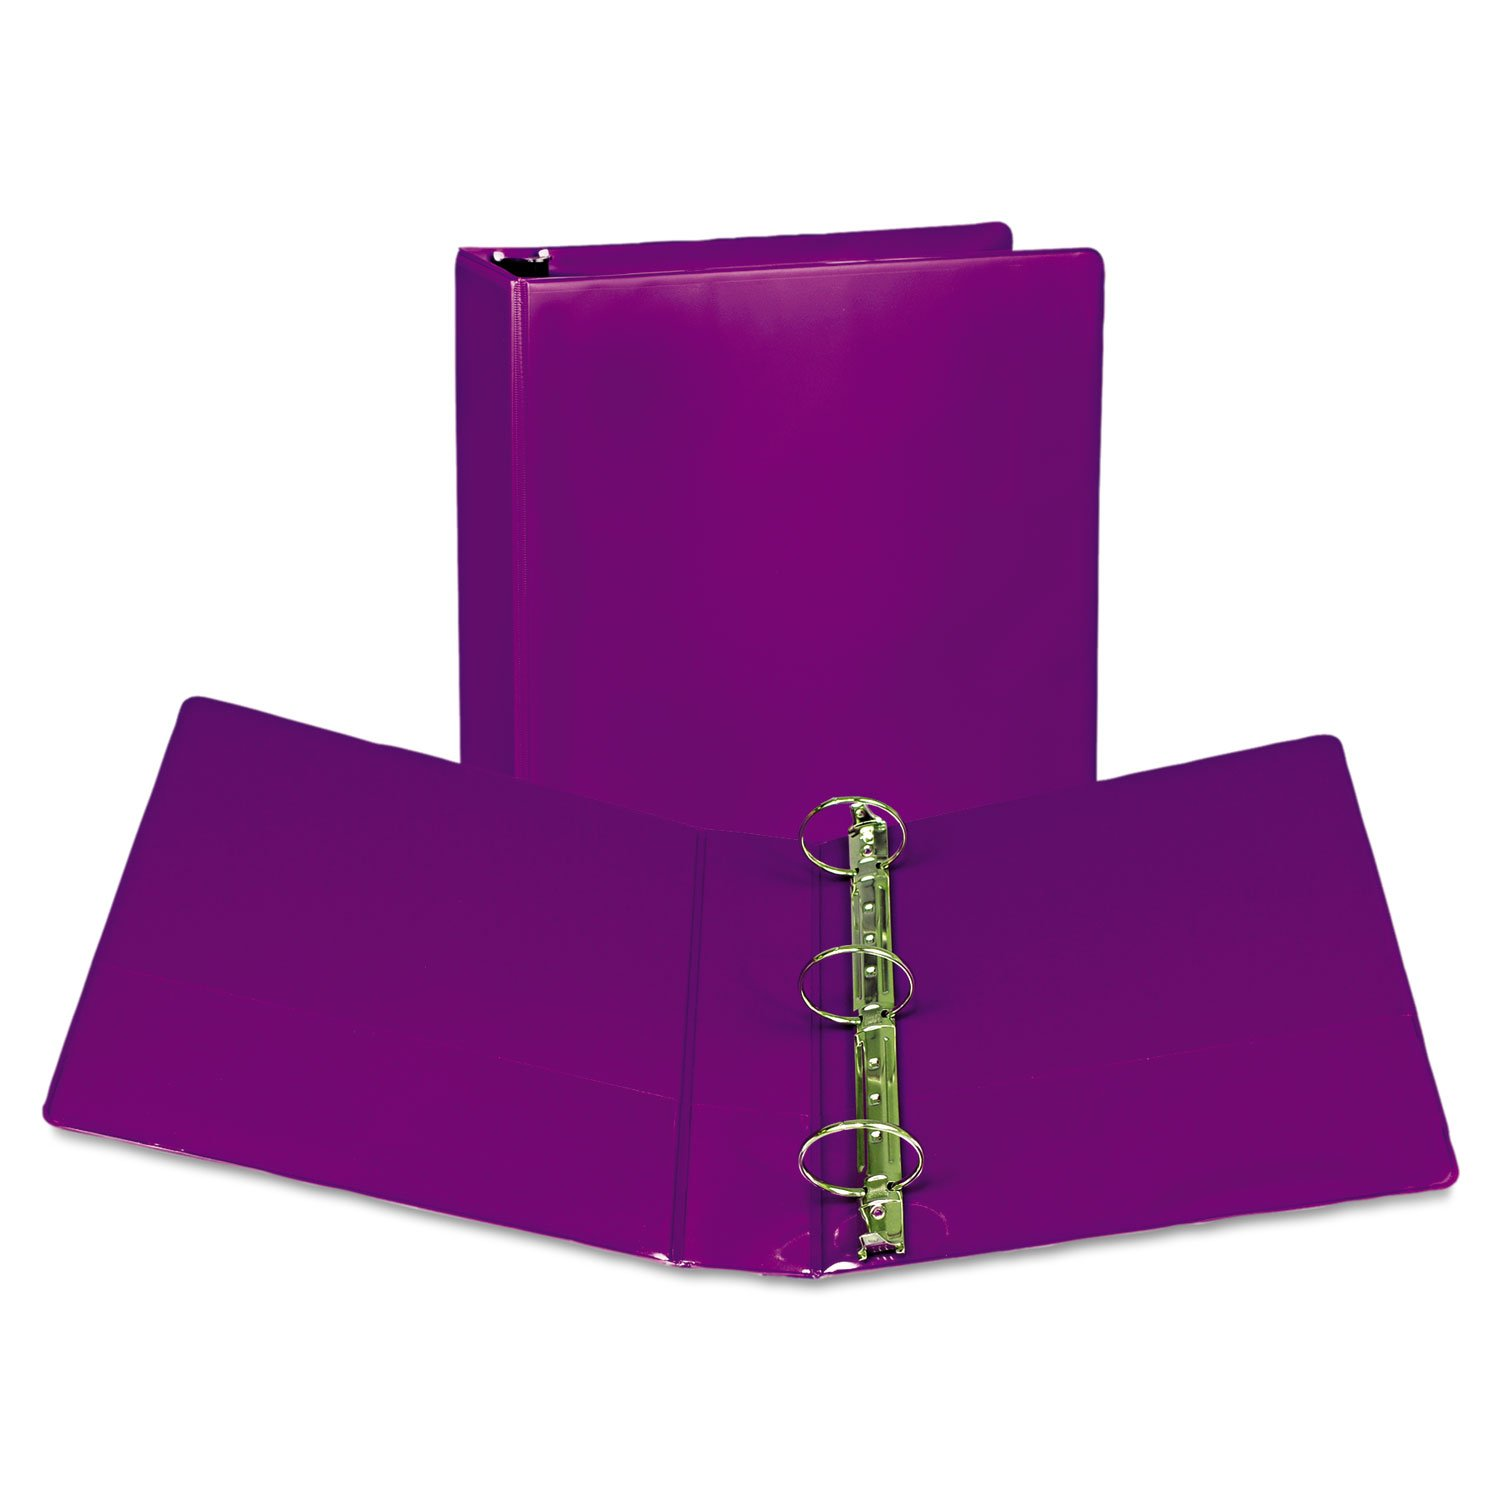 SAMSILL CORPORATION U86608 Fashion View Binder, Round Ring, 11 x 8-1/2, 2quot; Capacity, Purple, 2/Pack